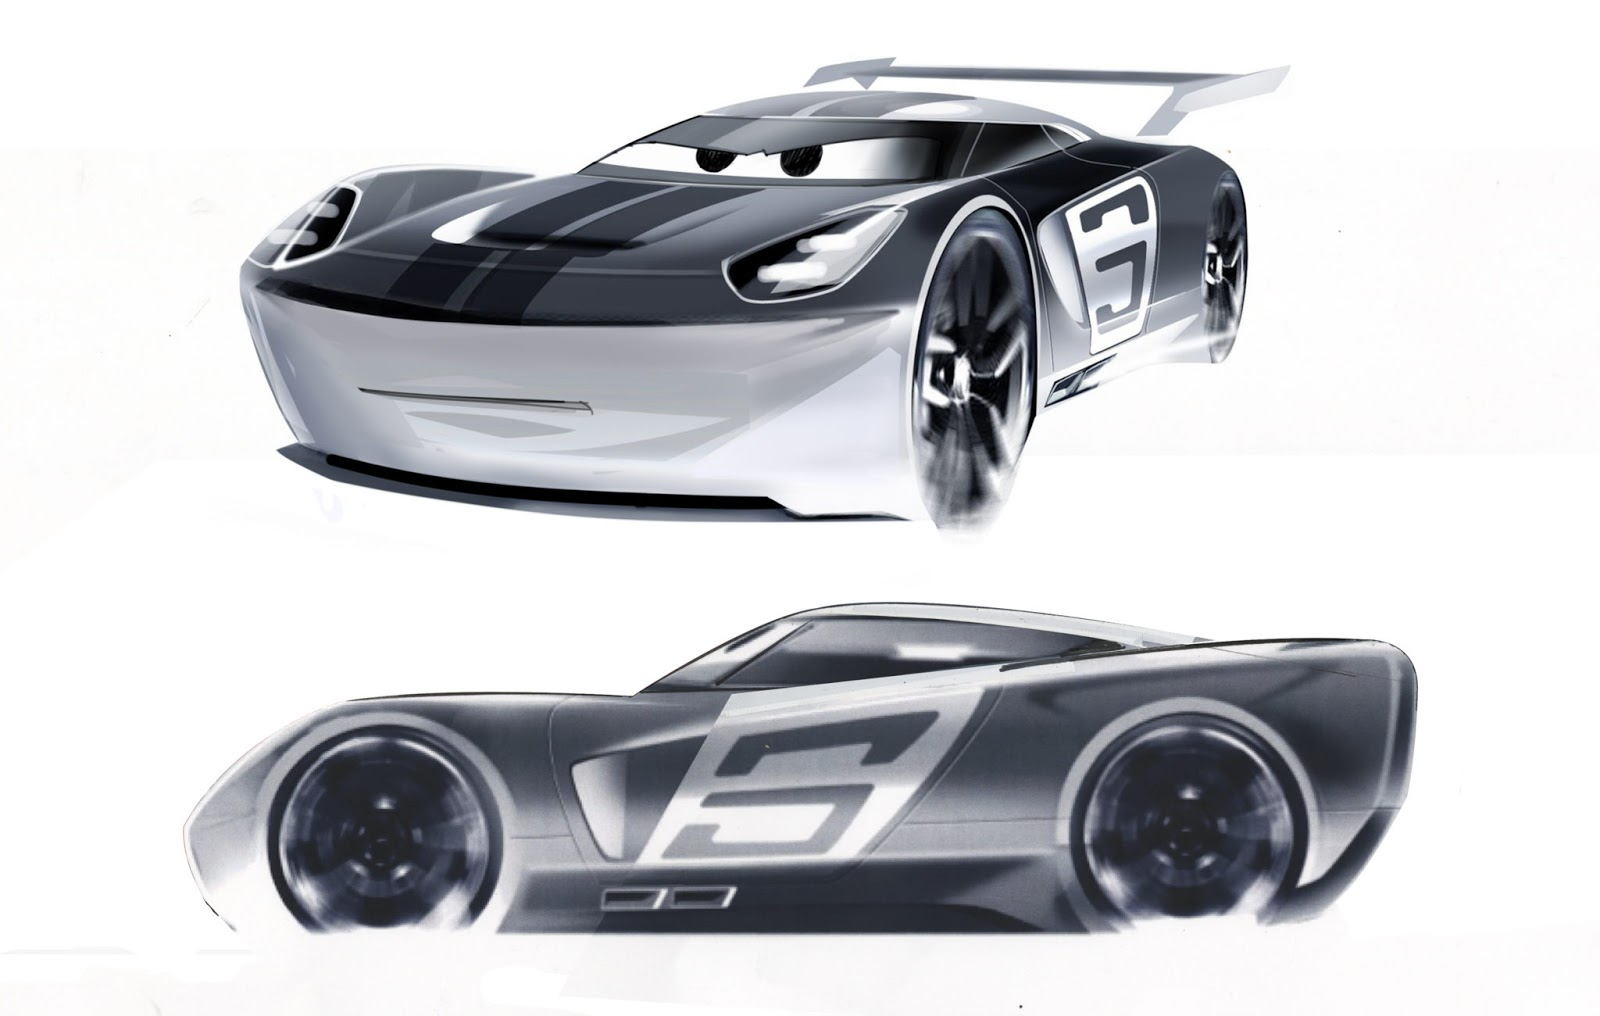 Just A Car Guy: Cars 3 behind the scenes stuff, and info on stock